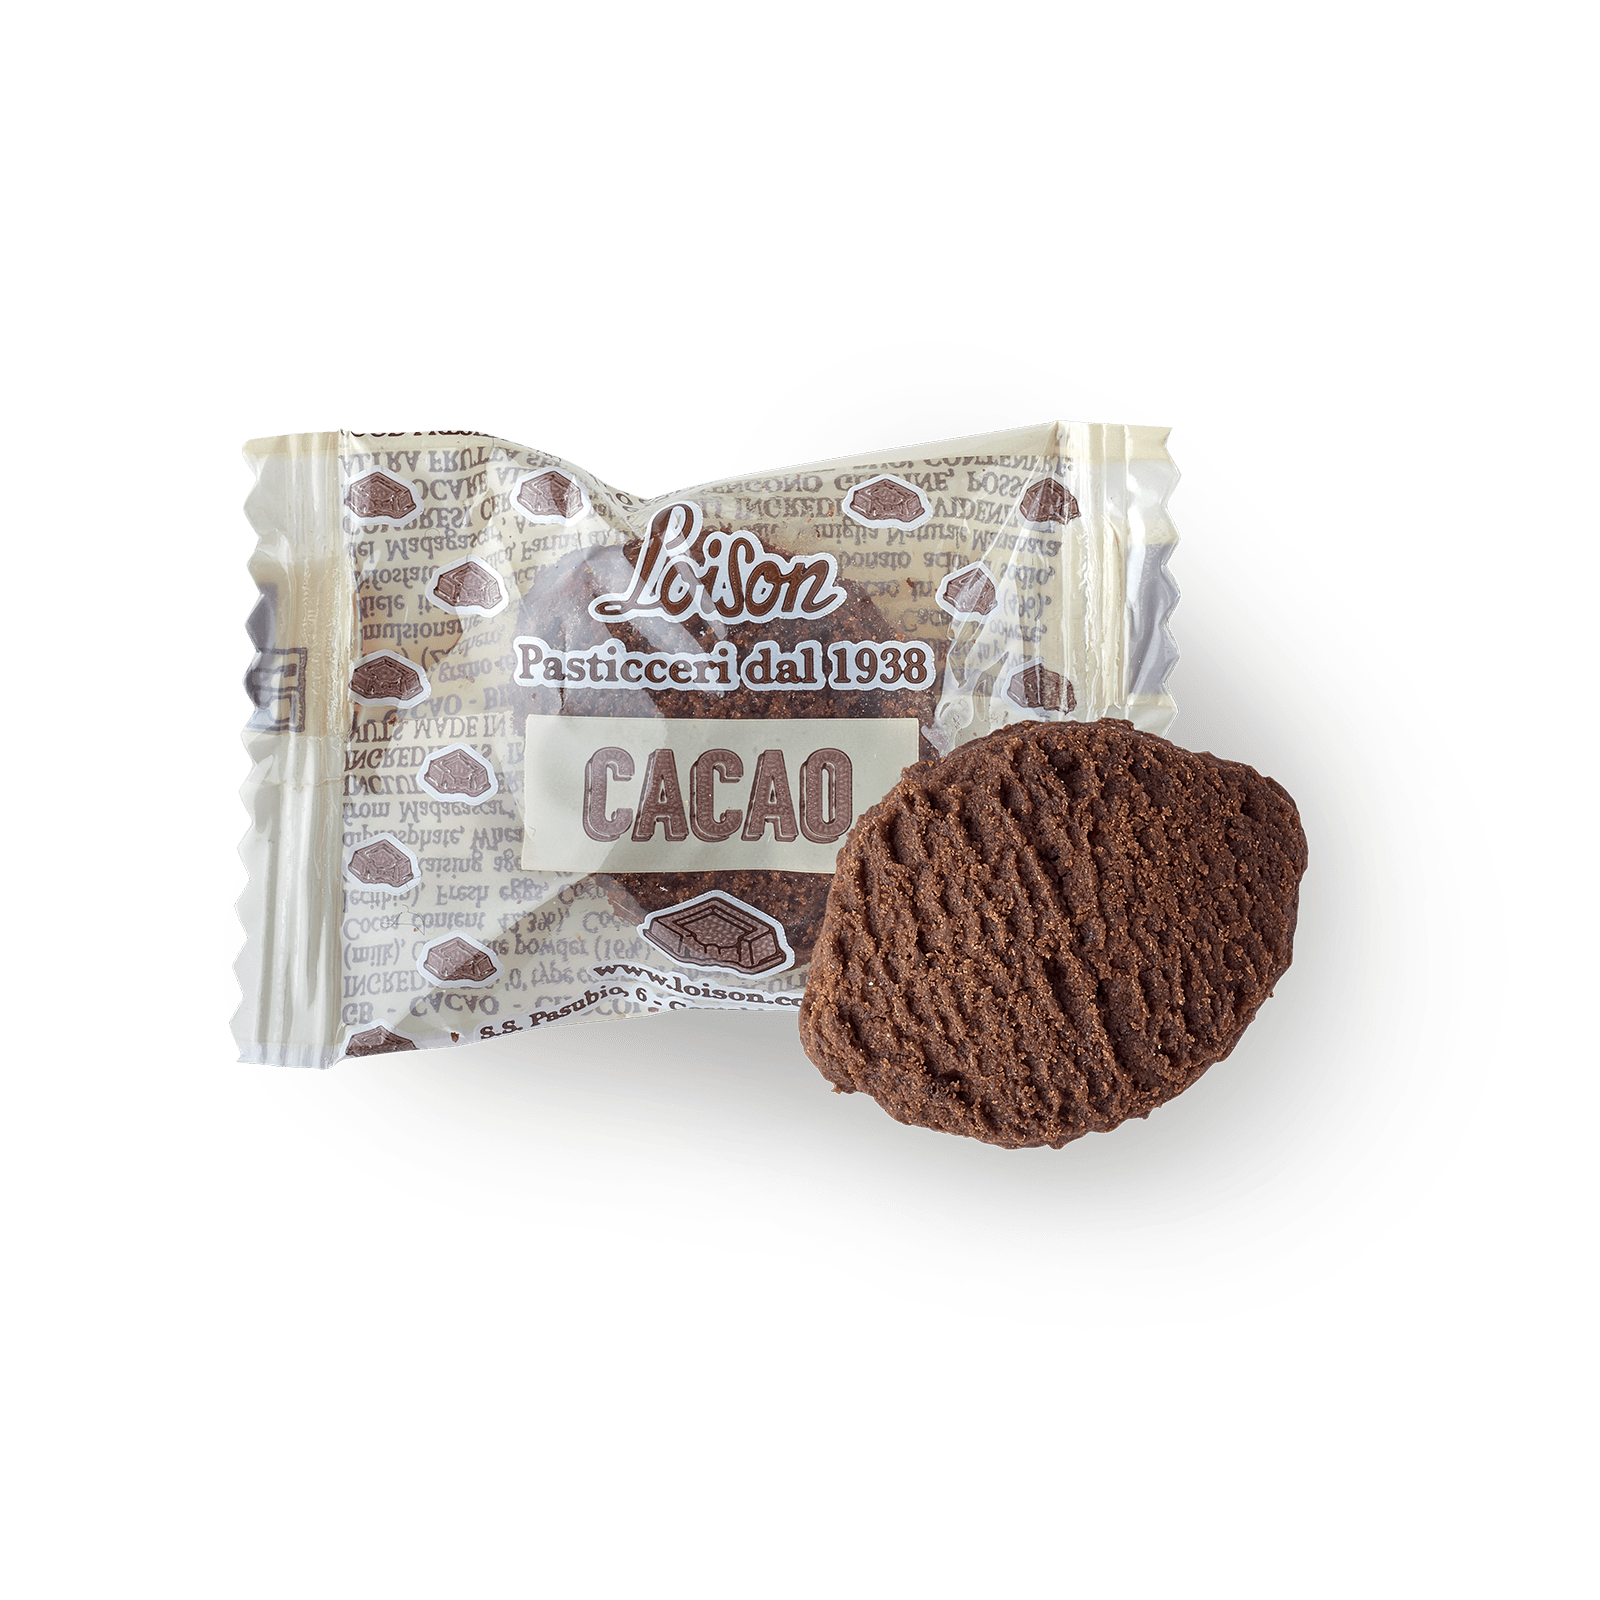 Chocolate biscuits individually wrapped Loison